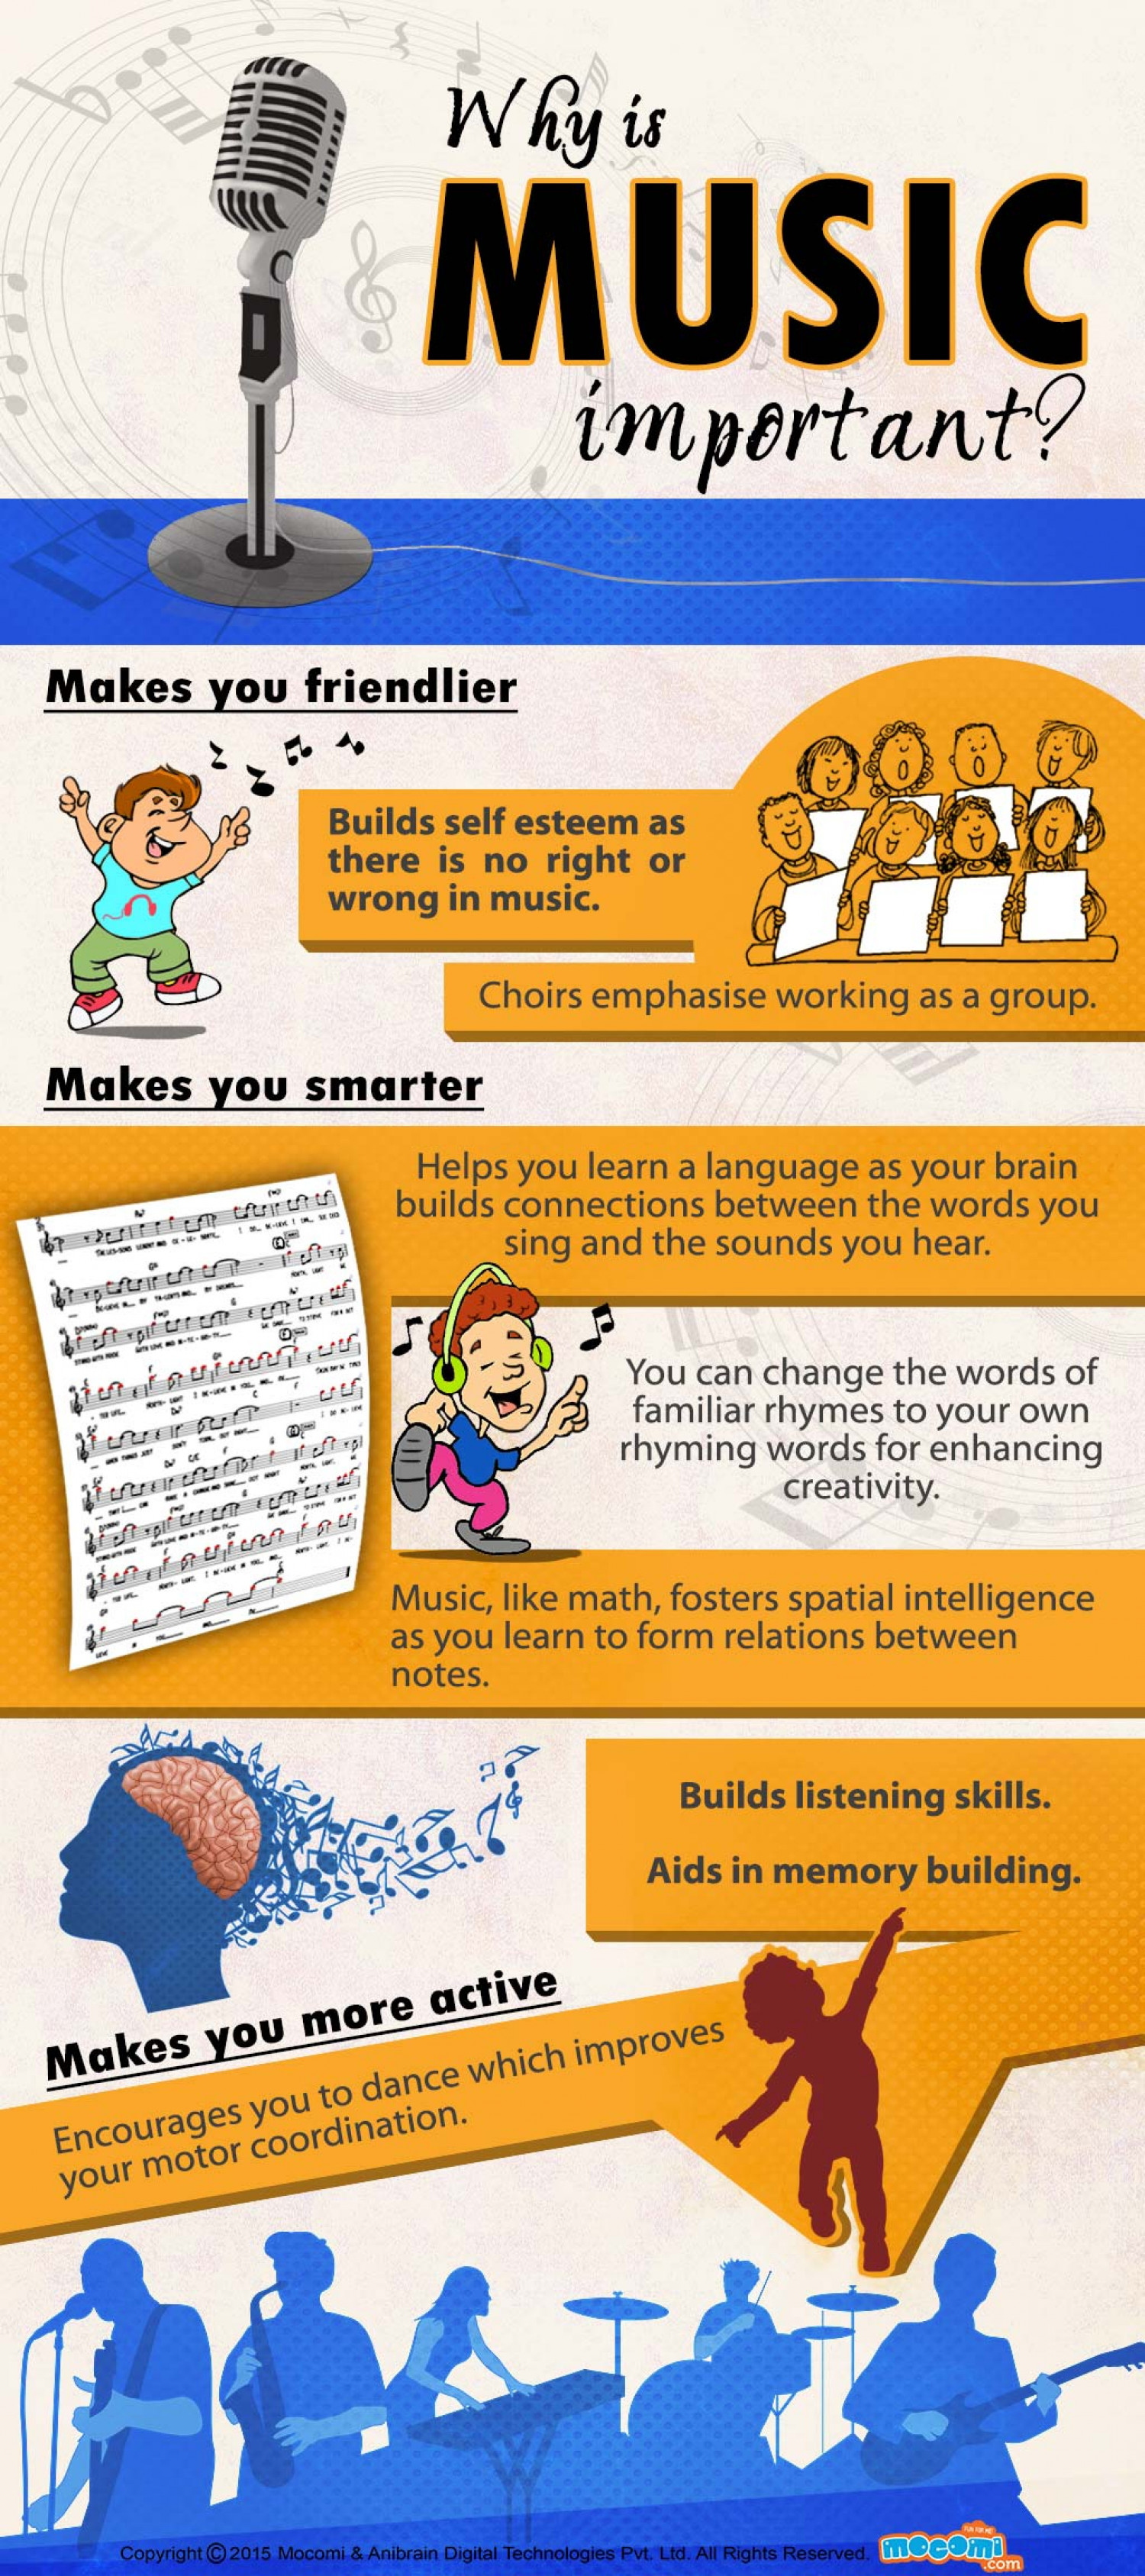 Why is Music Important? Infographic